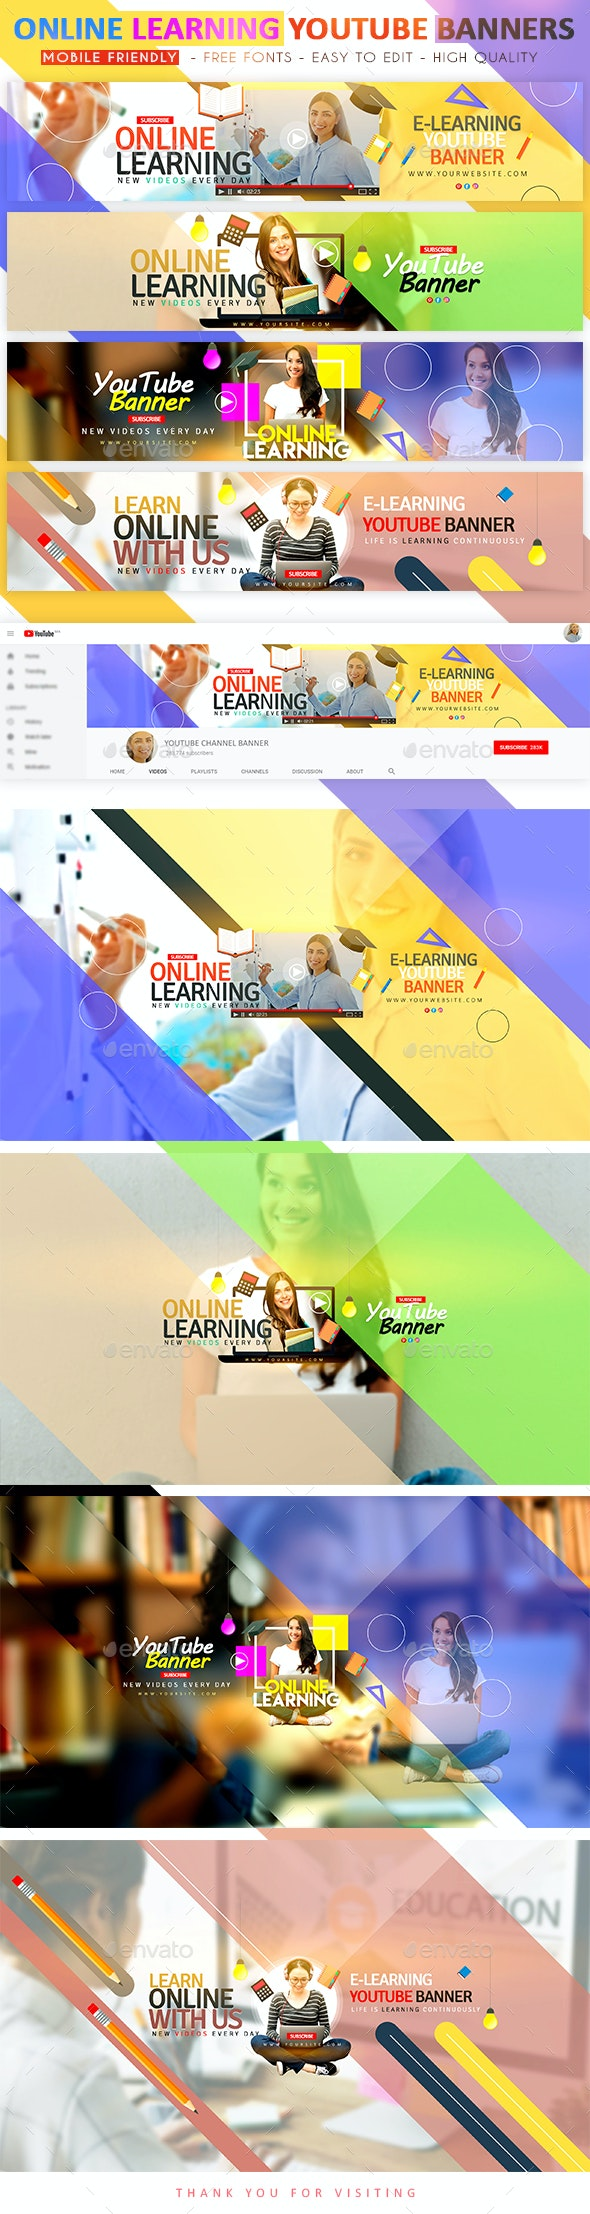 Online Learning YouTube Banners - YouTube Social Media